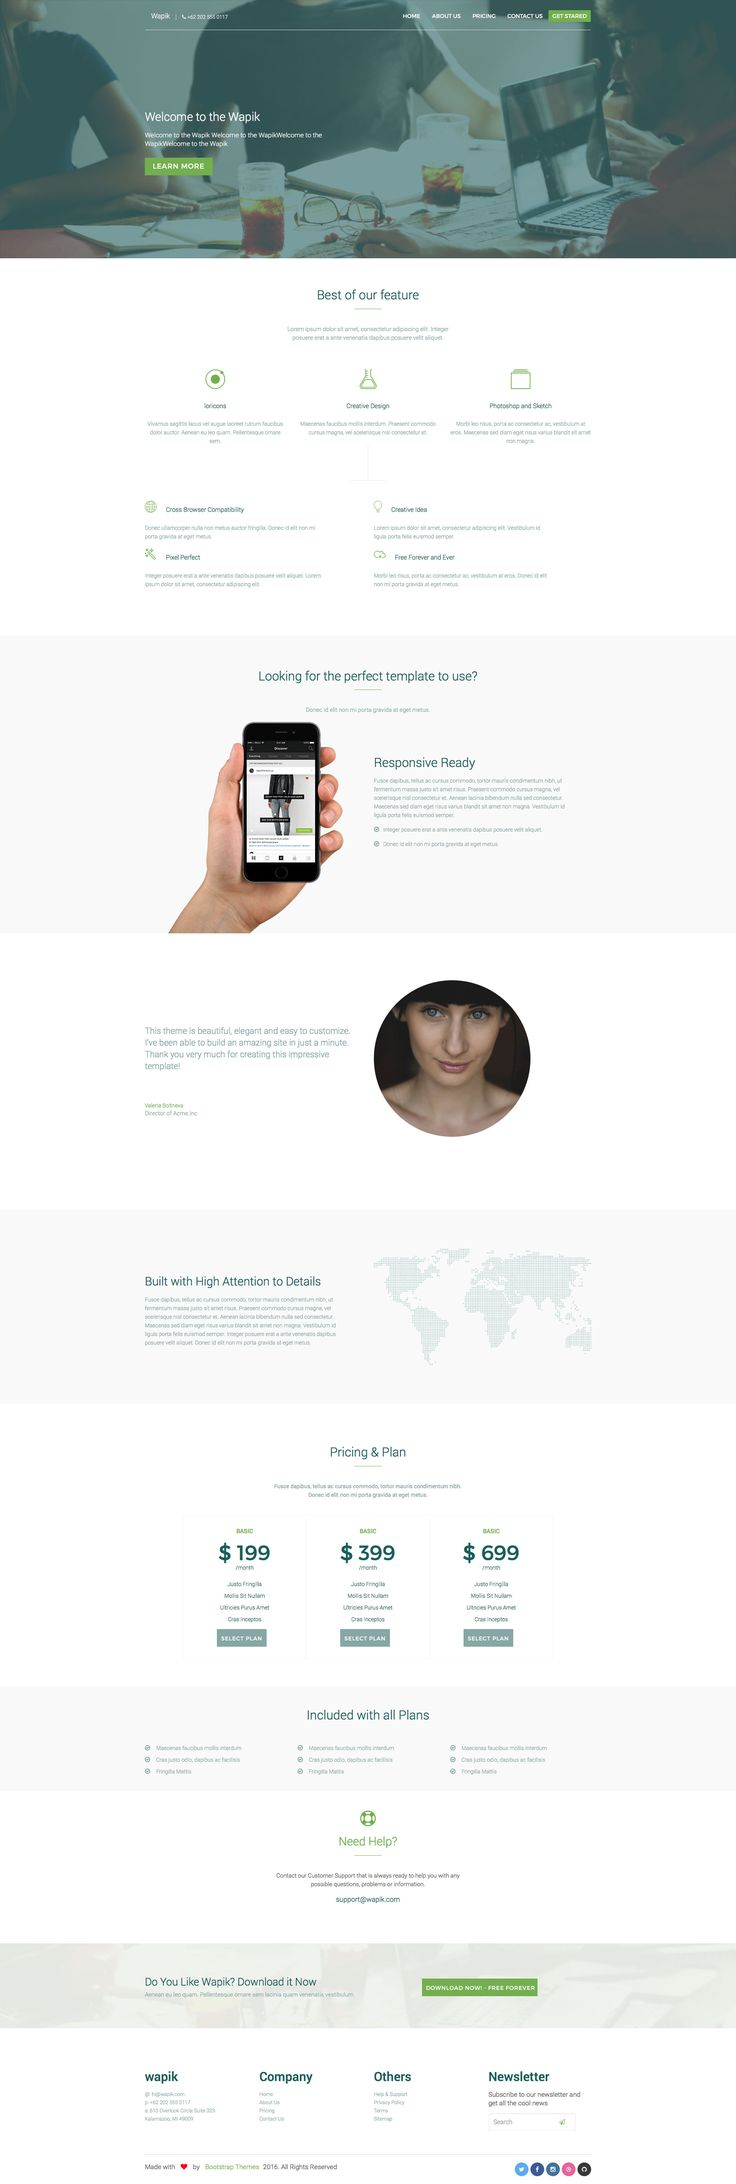 Wapik is a free responsive HTML5 business template designed for any kind of business website. Wapik template comes with three aditional pages and built with the popular Bootstrap framework. It features Google Map, Font-Awesome Icons, Responsive Pricing tables and many more.